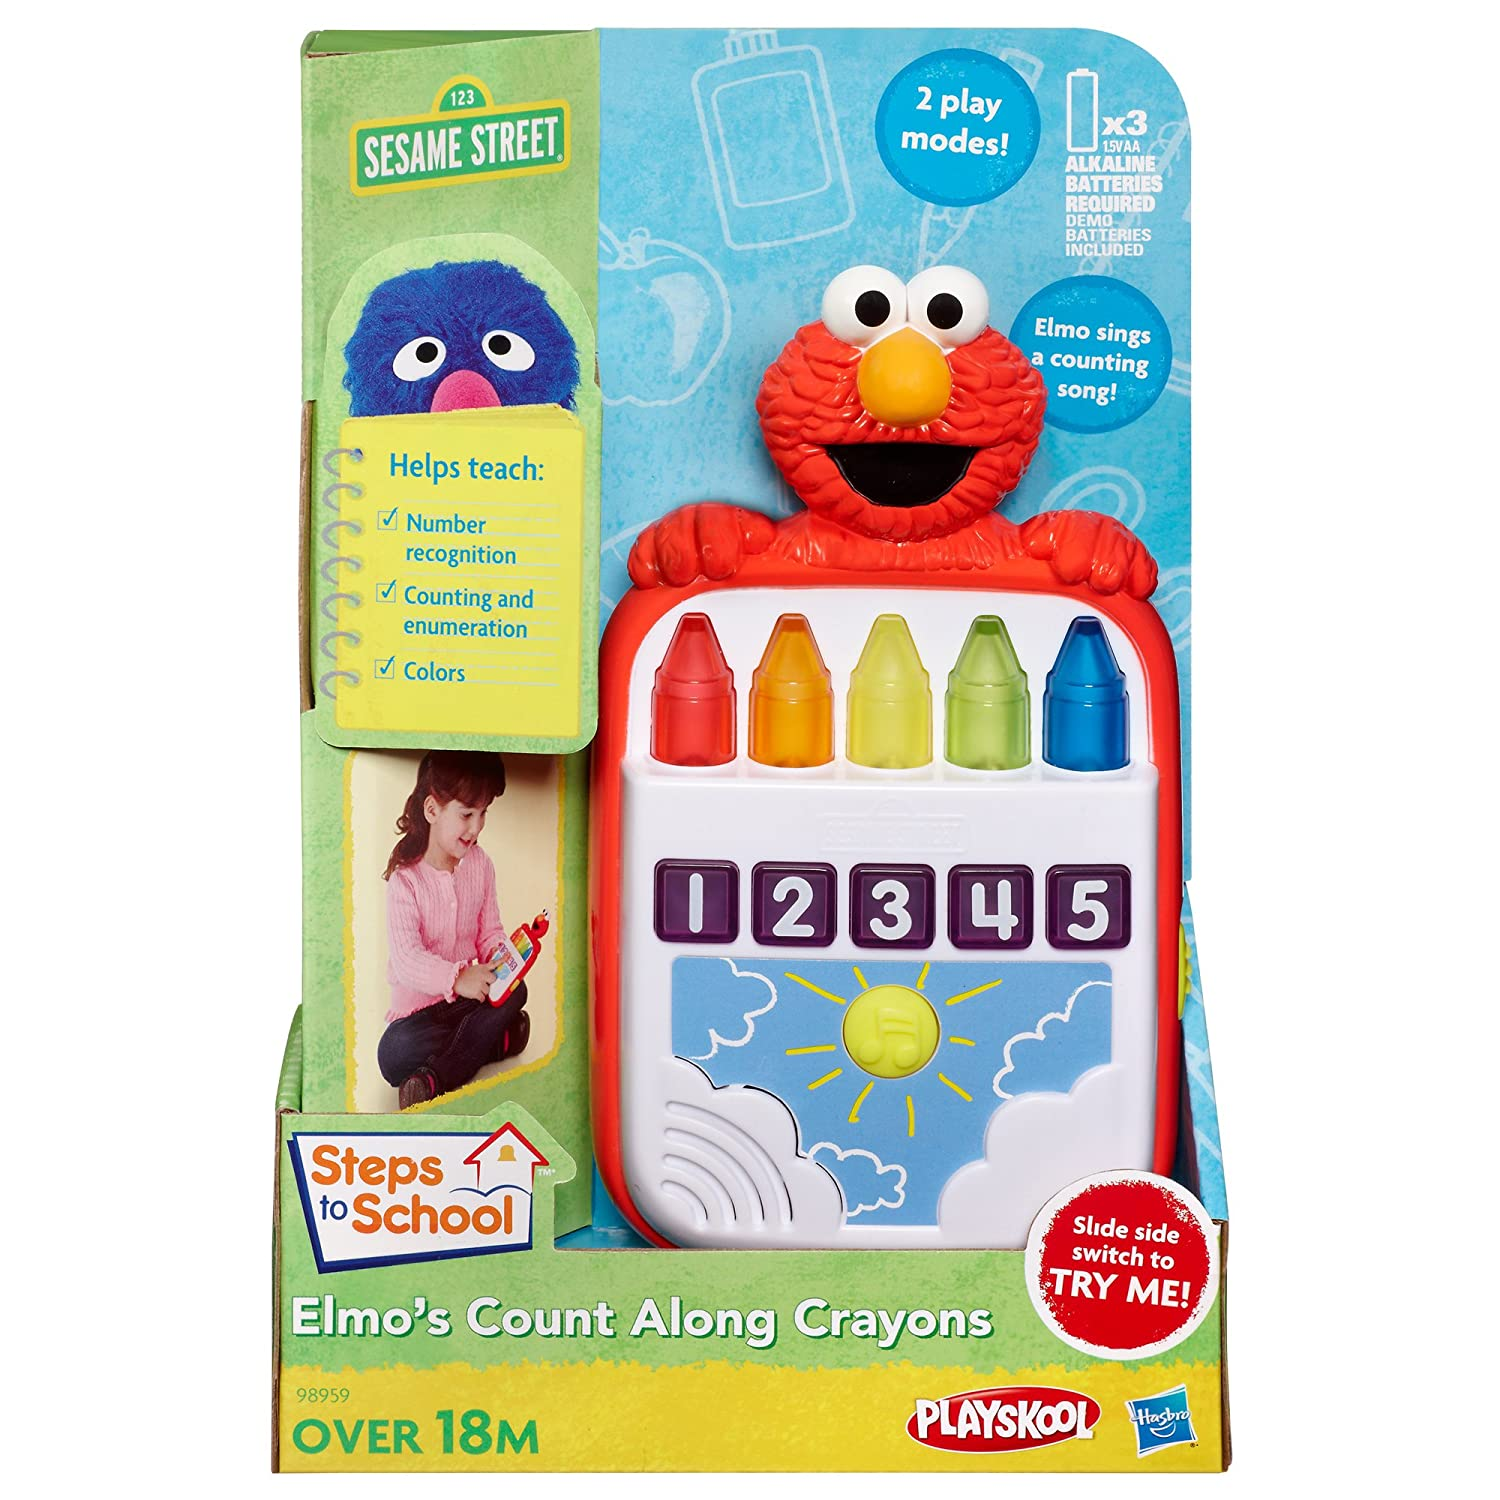 81dXfSIDfXL._SL1500_ amazon com playskool sesame street steps to school elmo's count  at gsmx.co